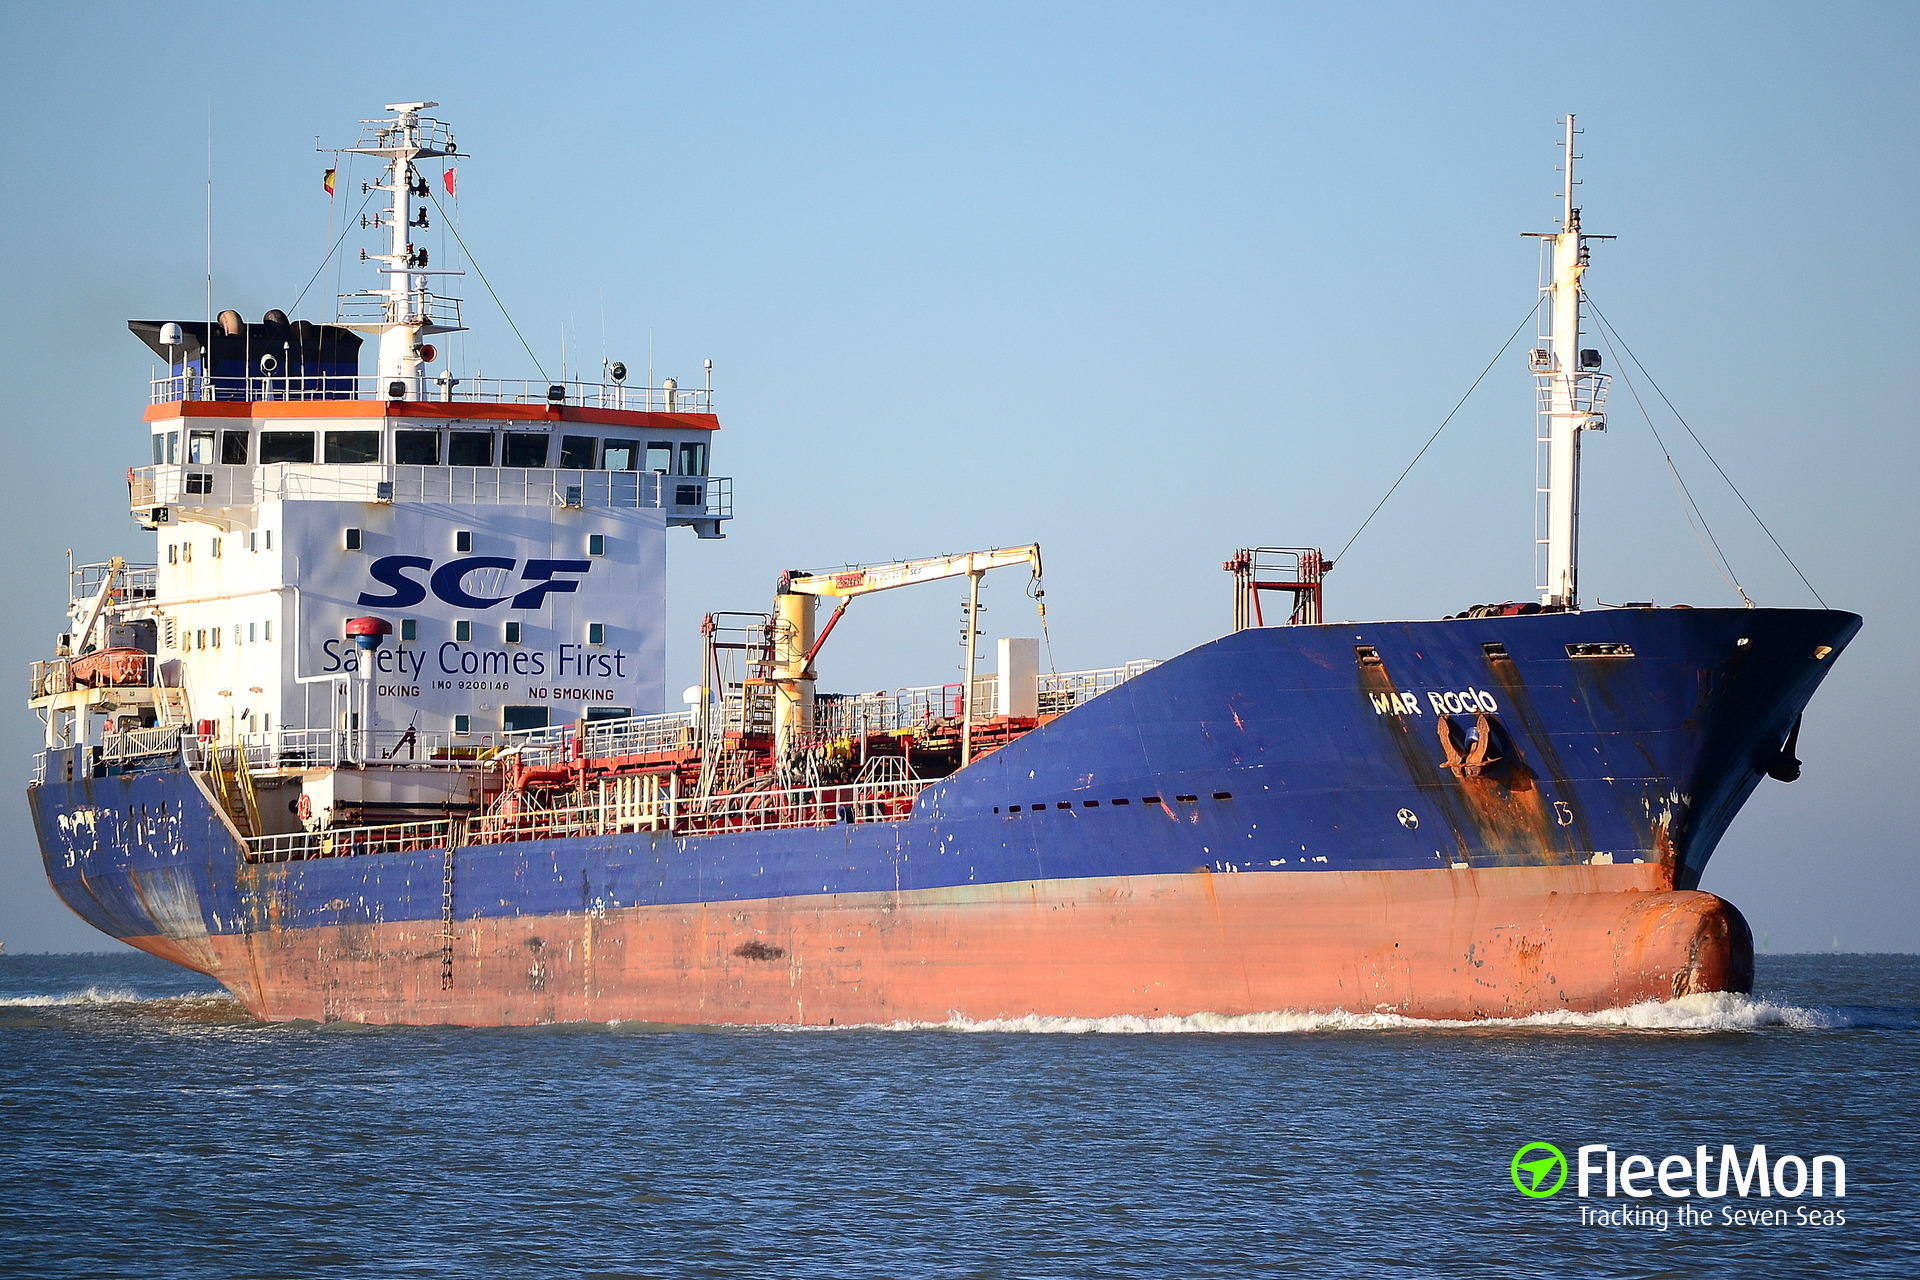 Sovcomflot chem tanker Mar Rocia detained for overloading, Brunsbuettel